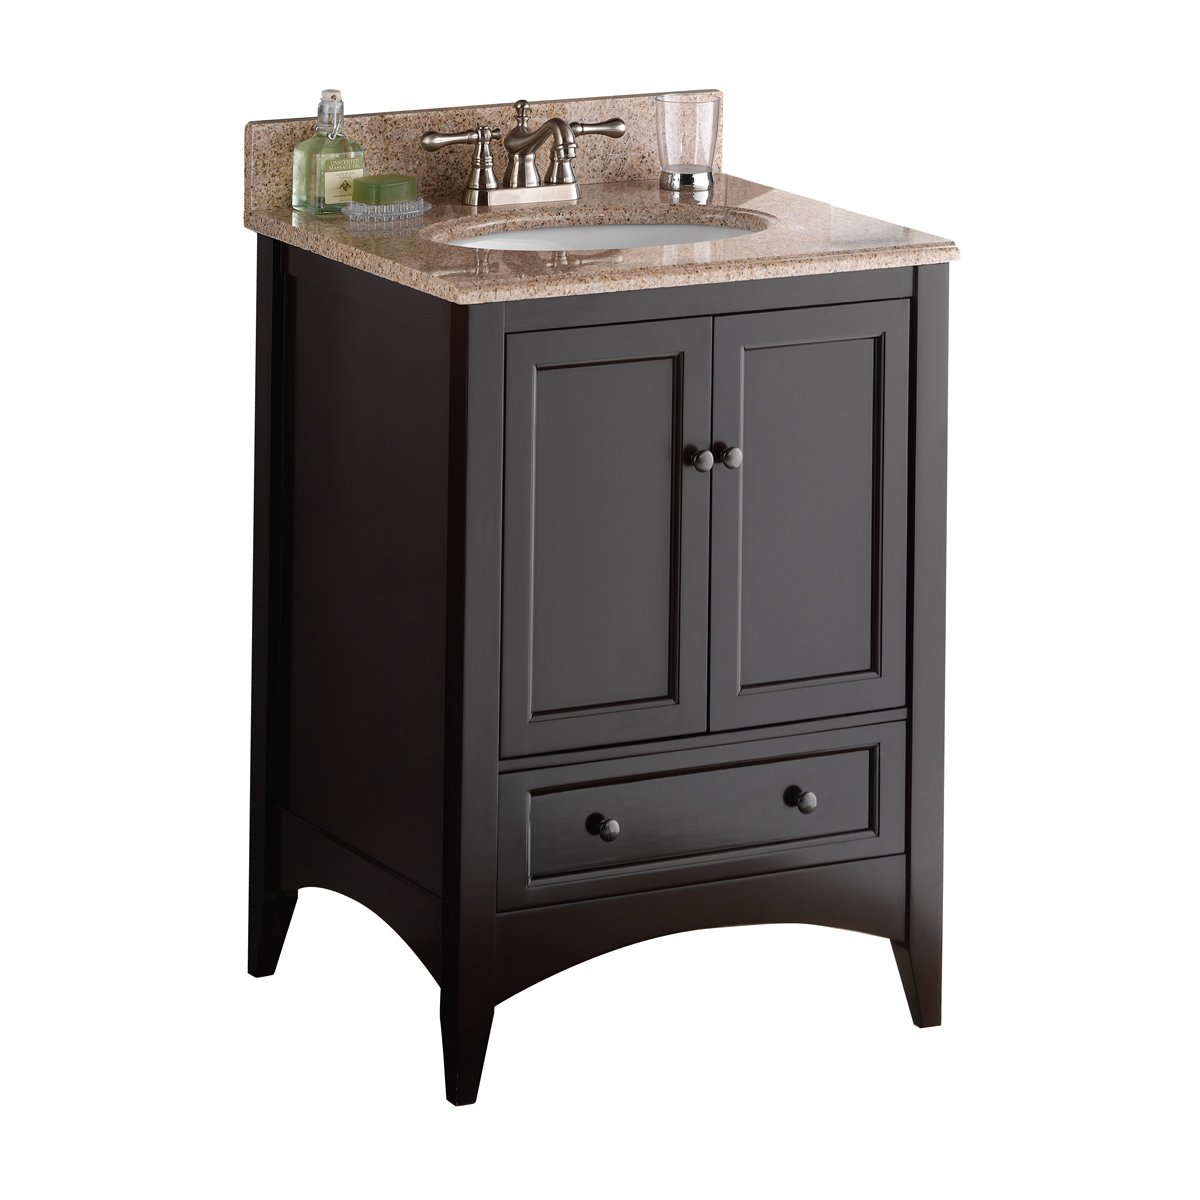 Foremost BECA2421D Berkshire 24 Inch Espresso Bathroom Vanity   Vanity  Sinks   Amazon.com